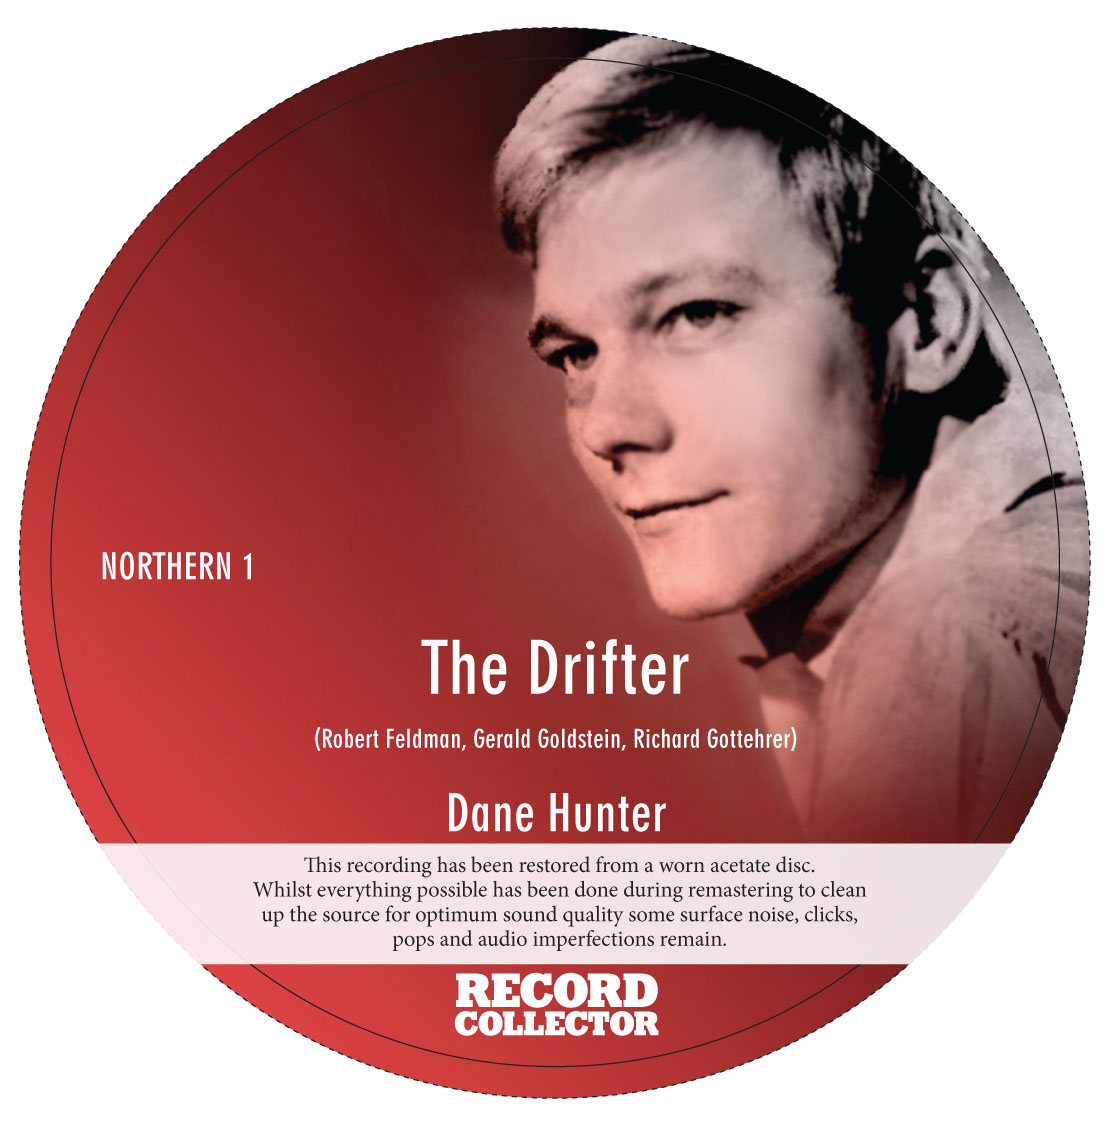 Dane Hunter - The Drifter 7